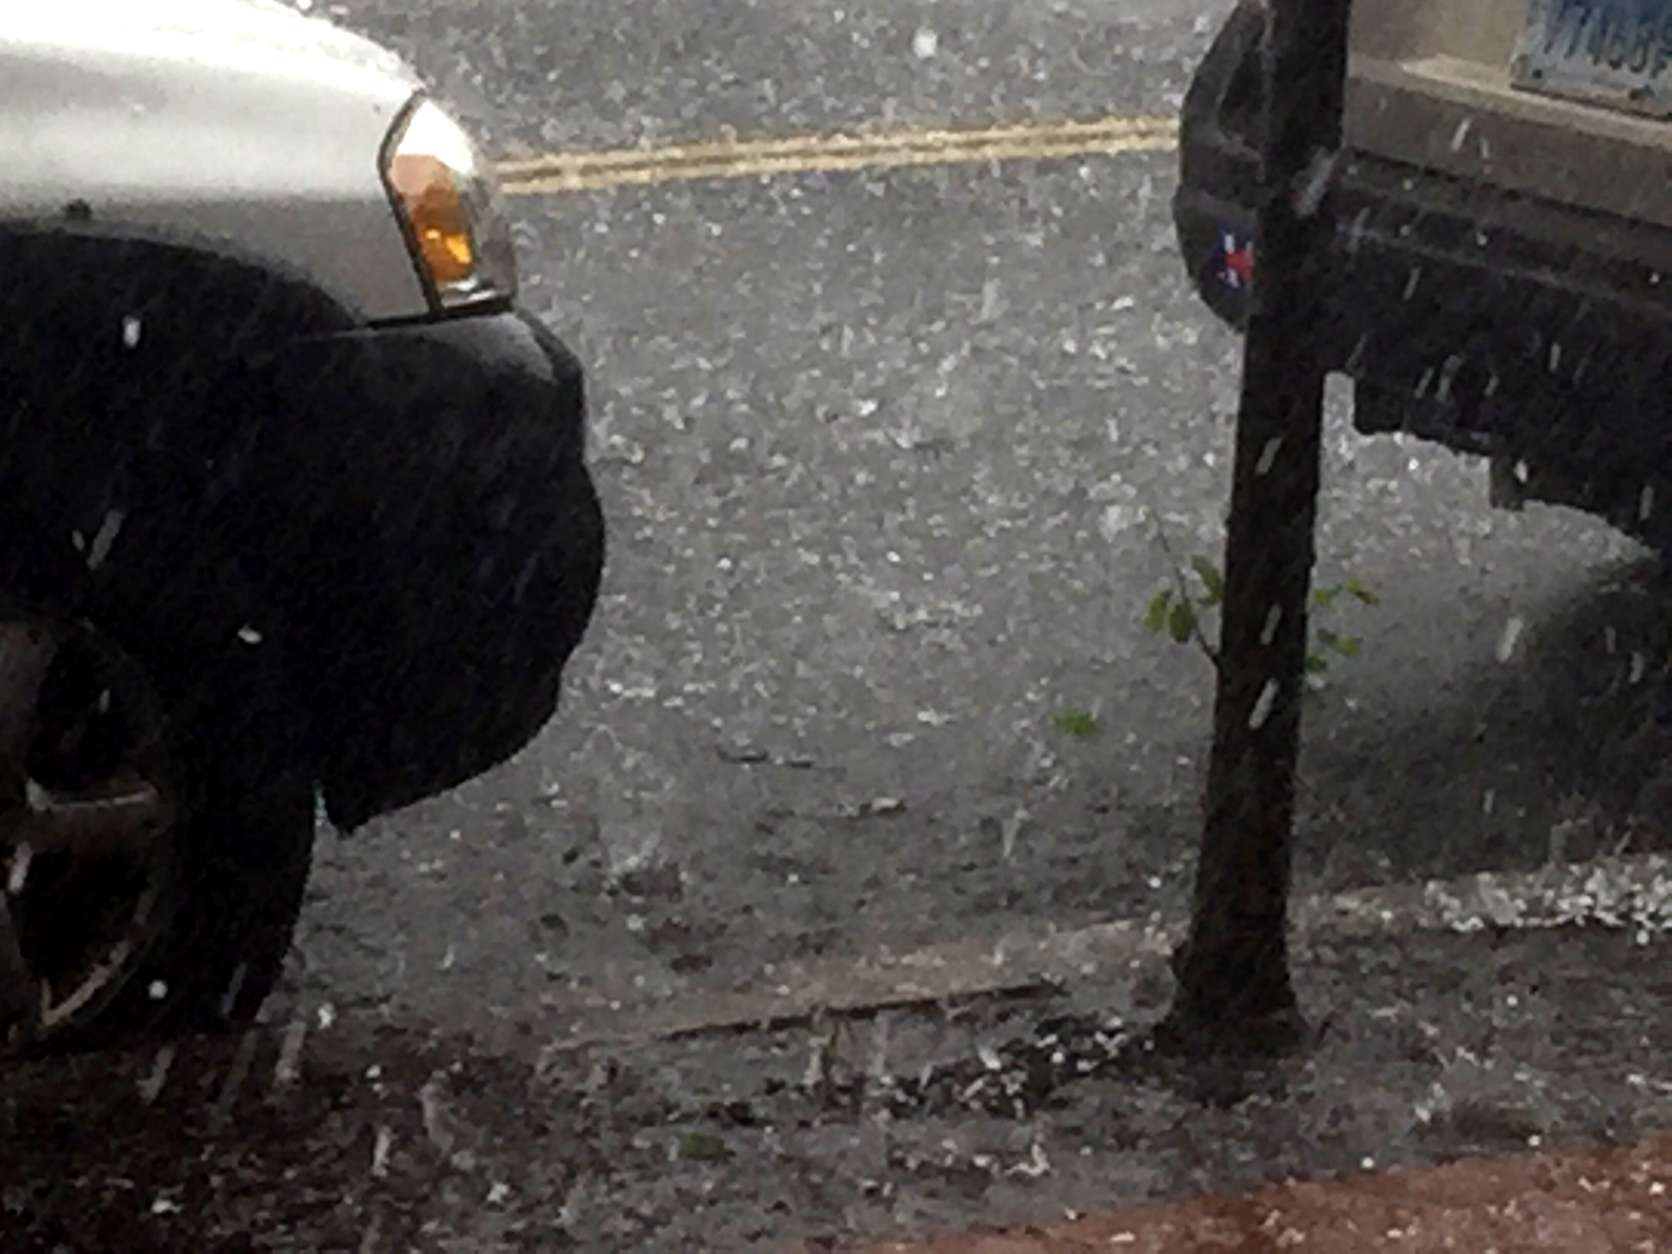 Photos of hail falling onto a parked car